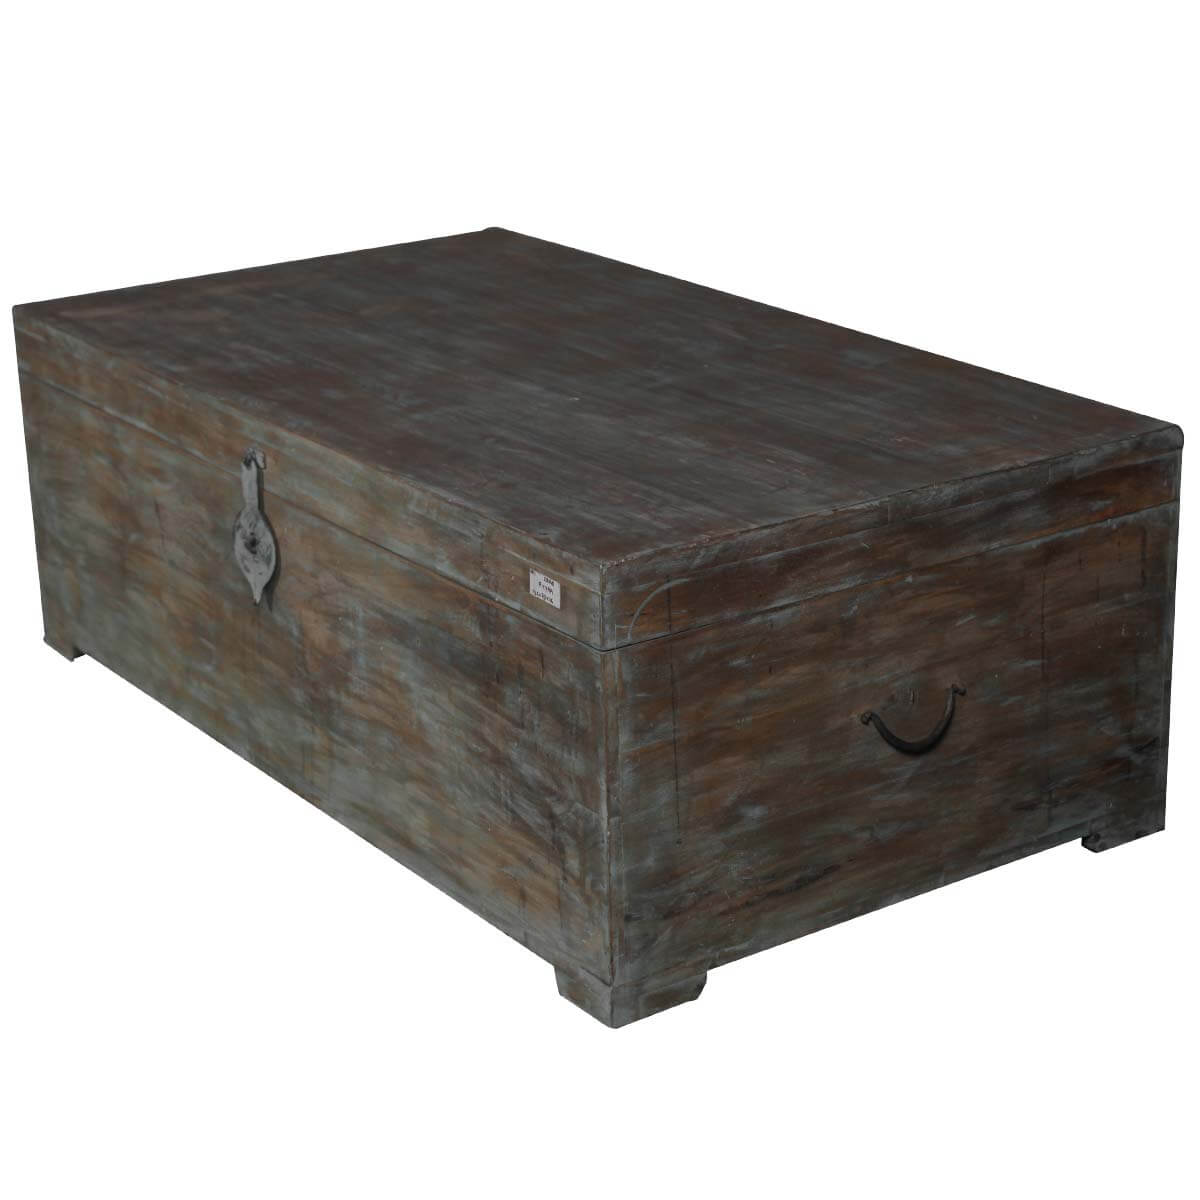 Large Distressed Wood Coffee Table: Rustic Mango Wood Distressed Coffee Table Storage Chest